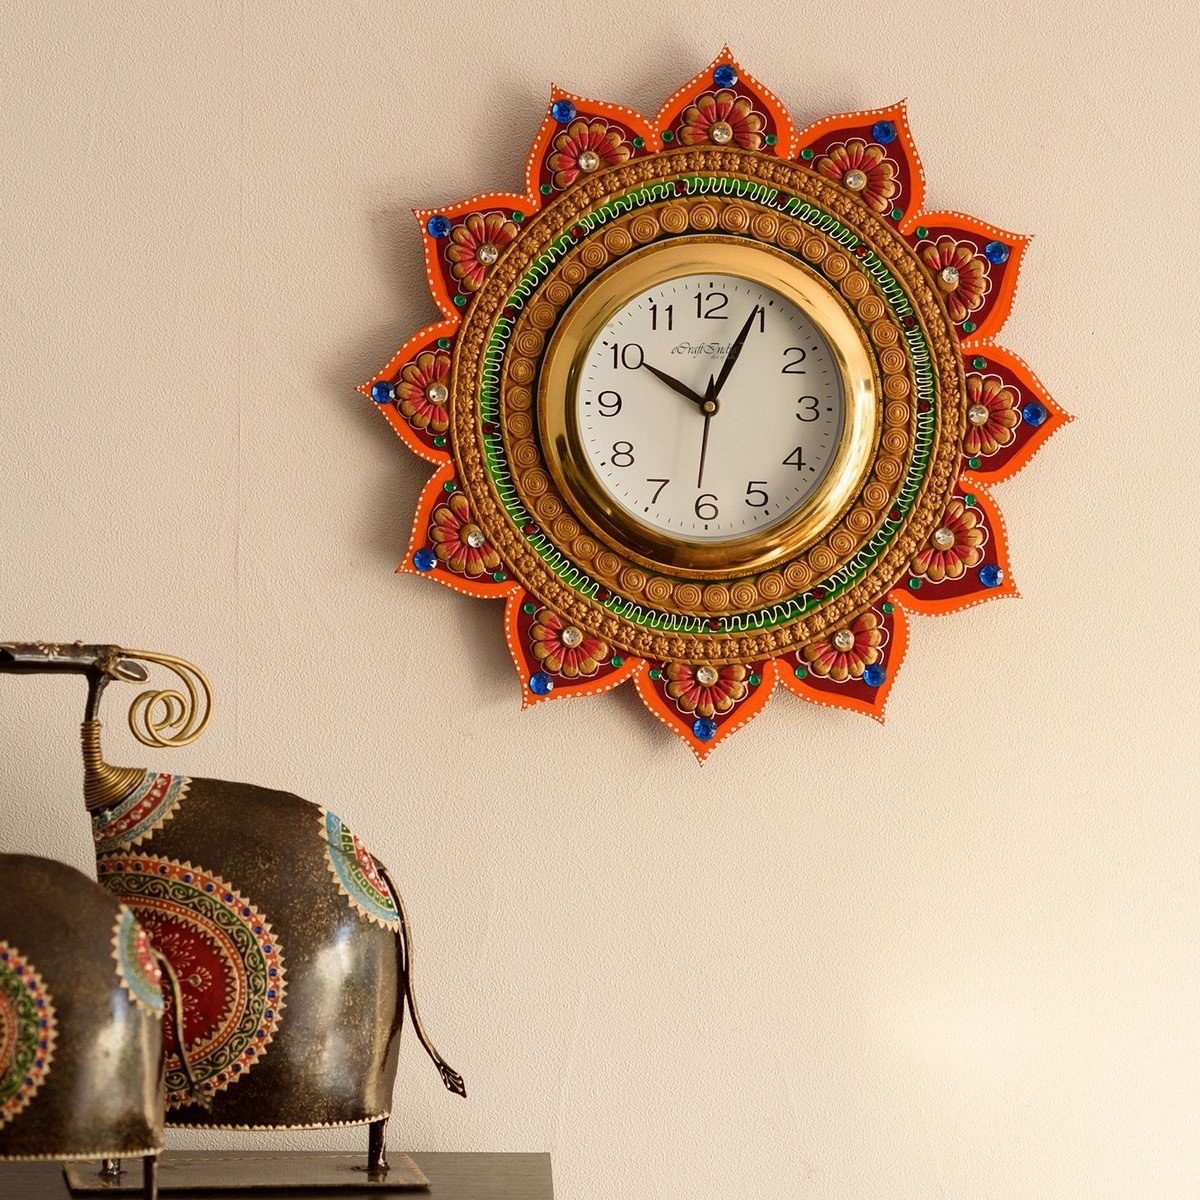 A colourful wall clock